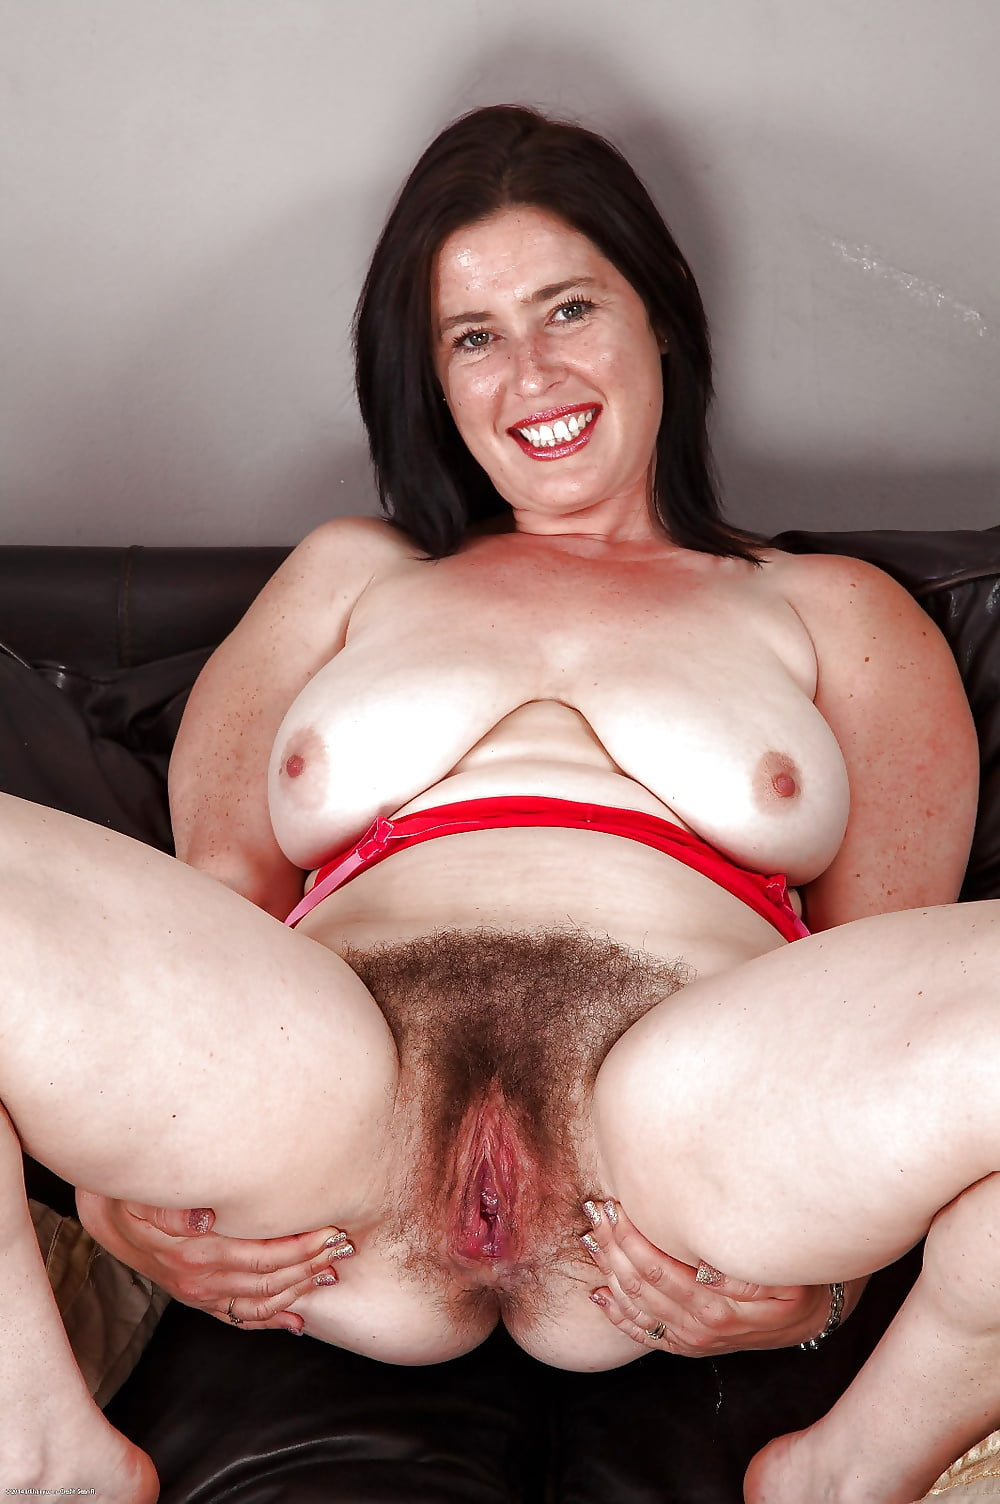 Fat woman huge pussy nude girls pictures